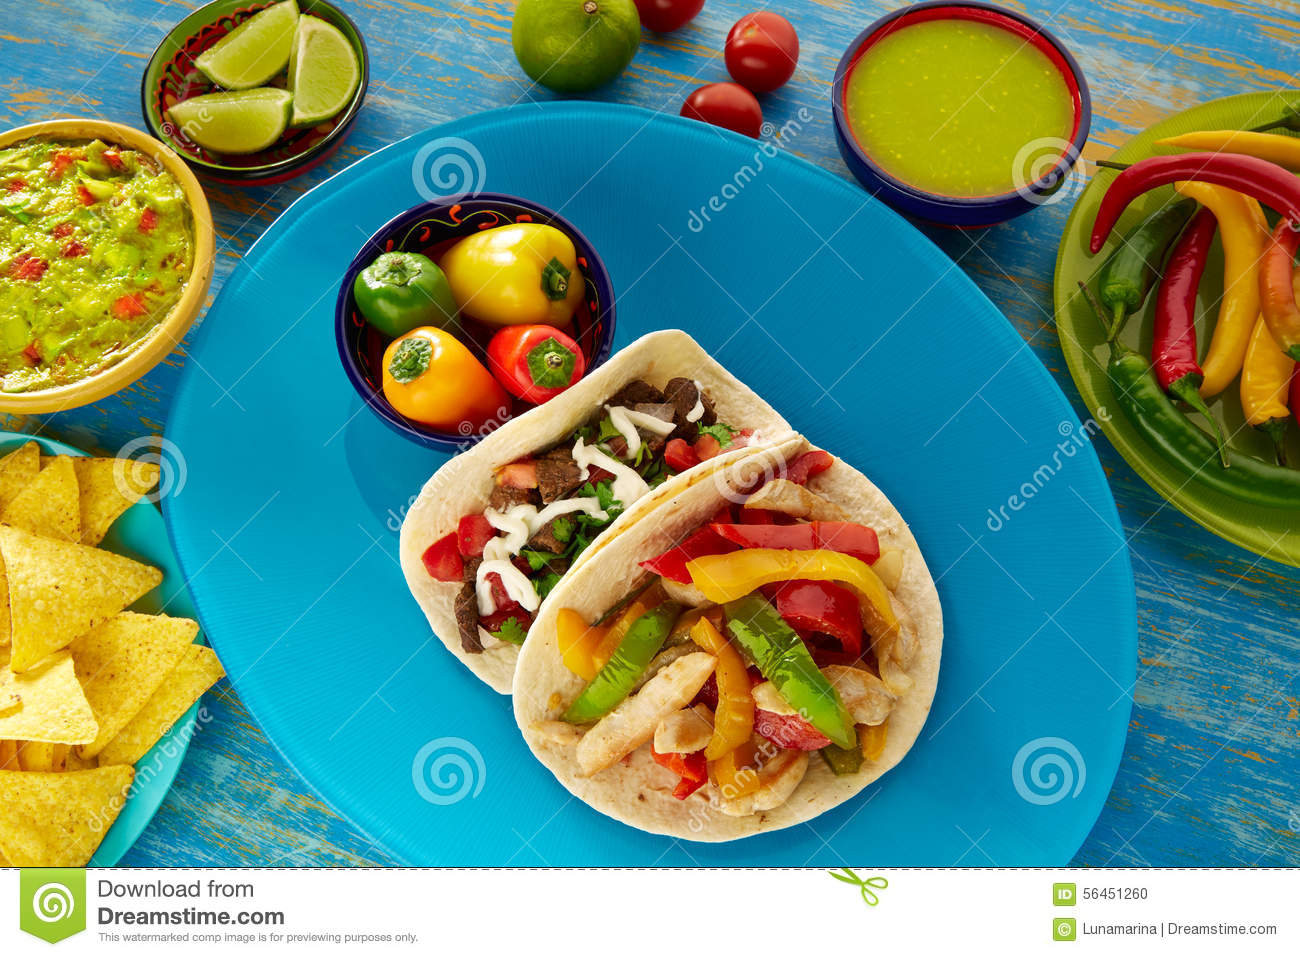 Mexican Tacos Chicken Fajita And Beef Res Taco Stock Photo - Image ...